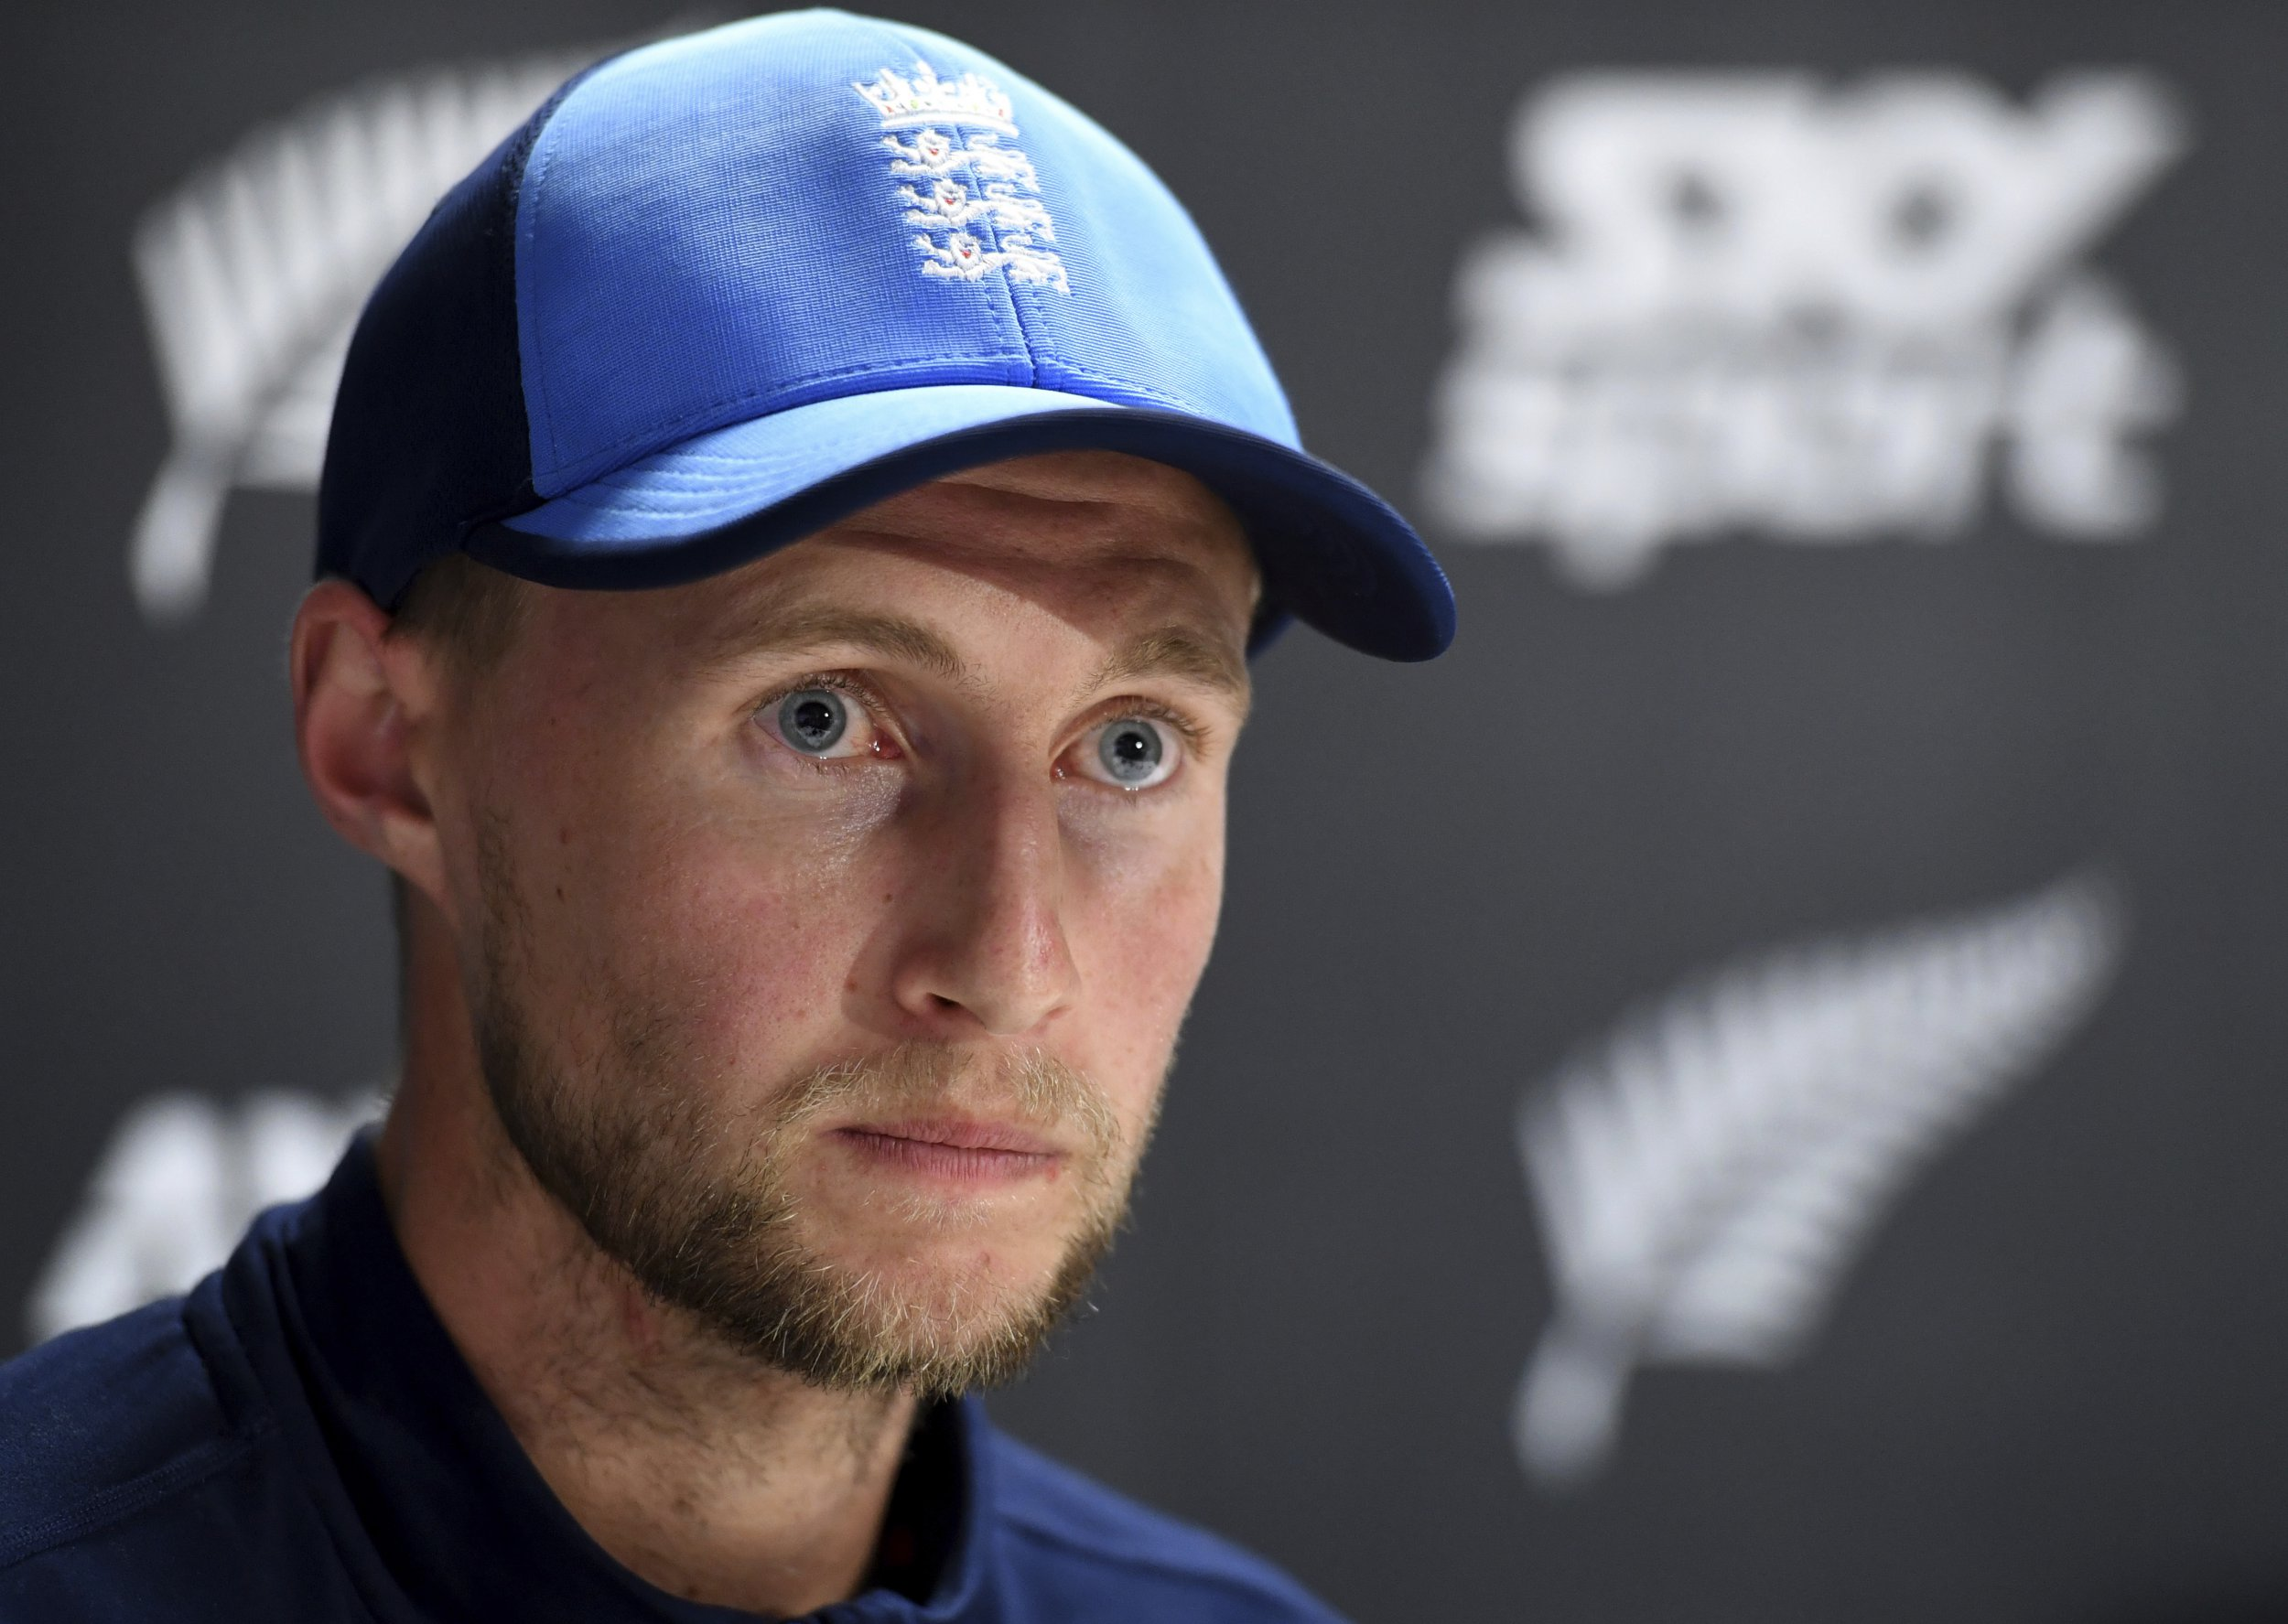 England captain Joe Root answers questions at a press conference following his teams innings and 49 run defeat to New Zealand in the first cricket test in Auckland, New Zealand, Monday, March 26, 2018. (AP Photo/Ross Setford)